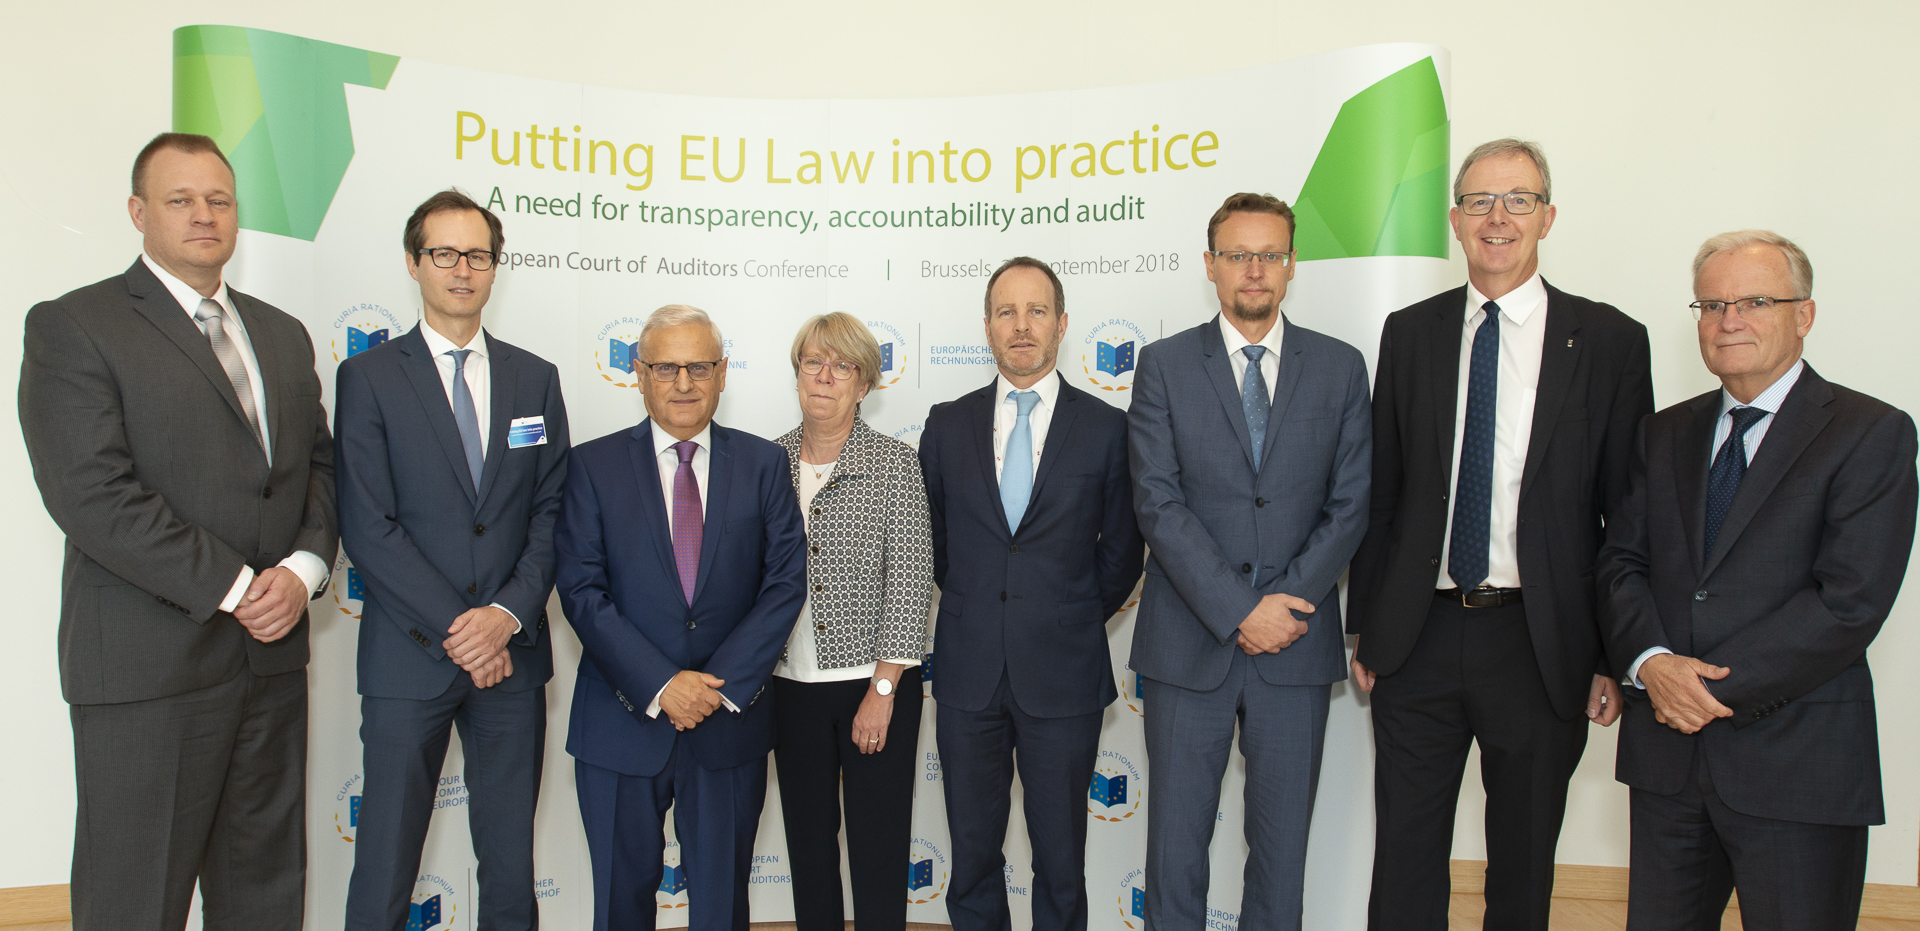 """Putting EU law into practice effectively is essential for delivering results"", says European Court of Auditors' Leo Brincat"